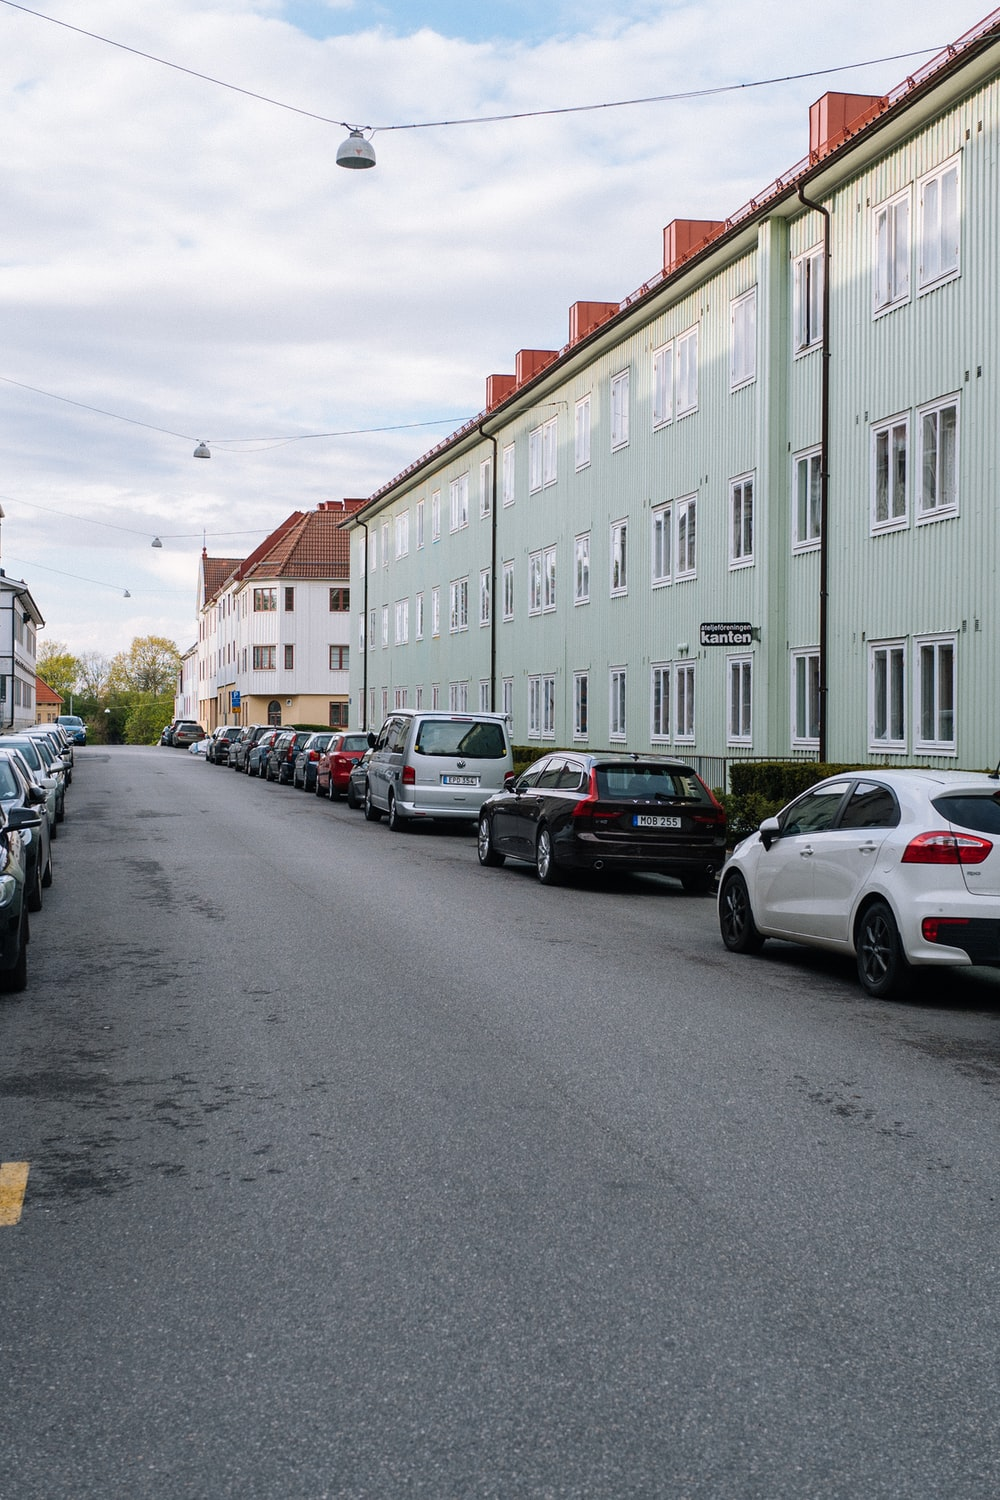 cars parked in front of building during daytime